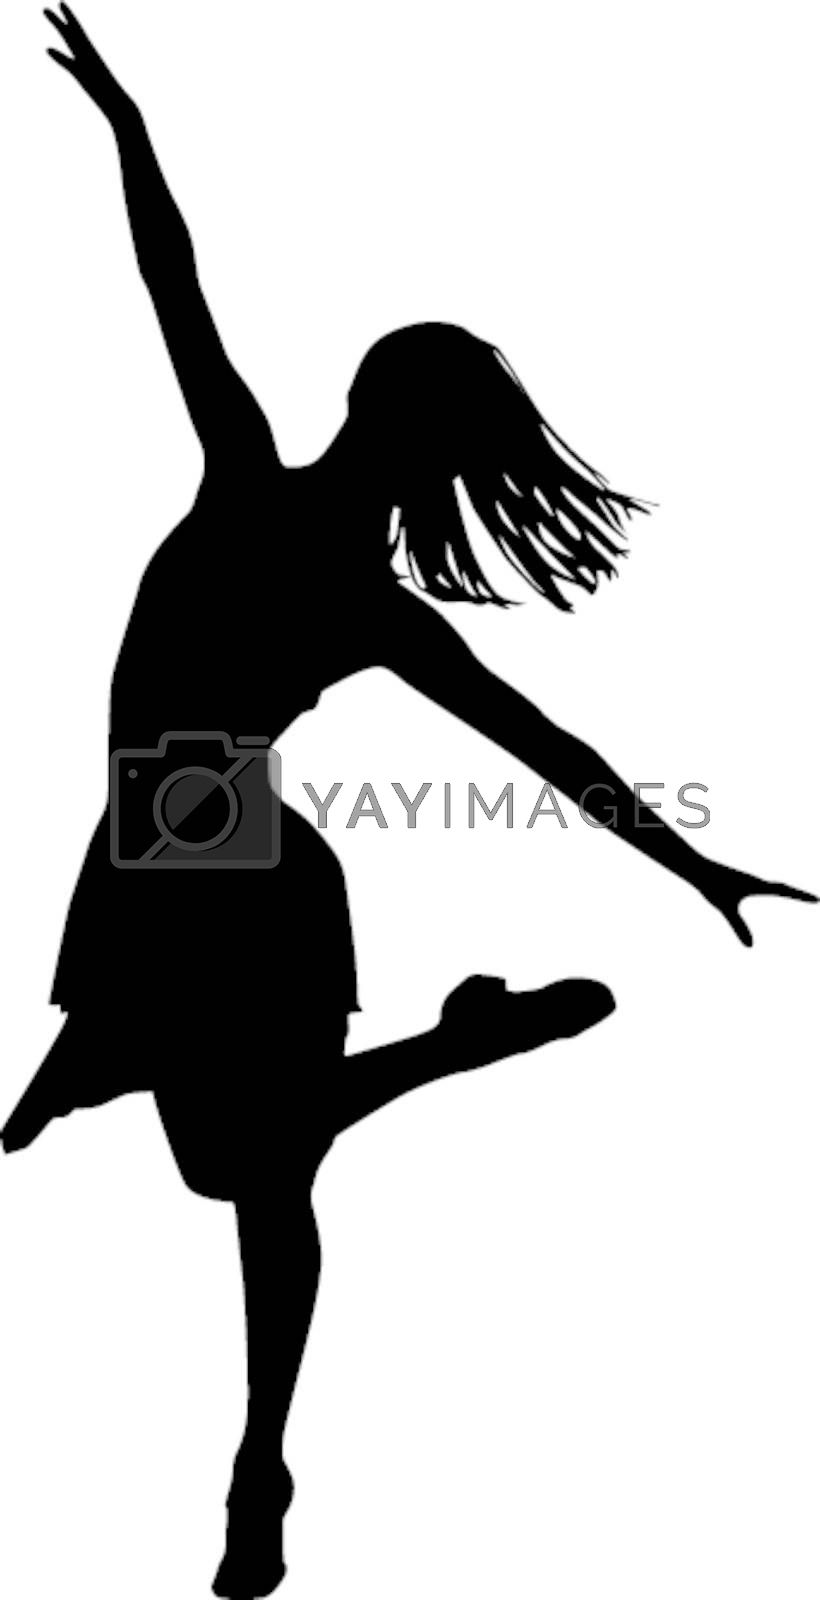 Royalty free image of Dancer silhouette by sattva